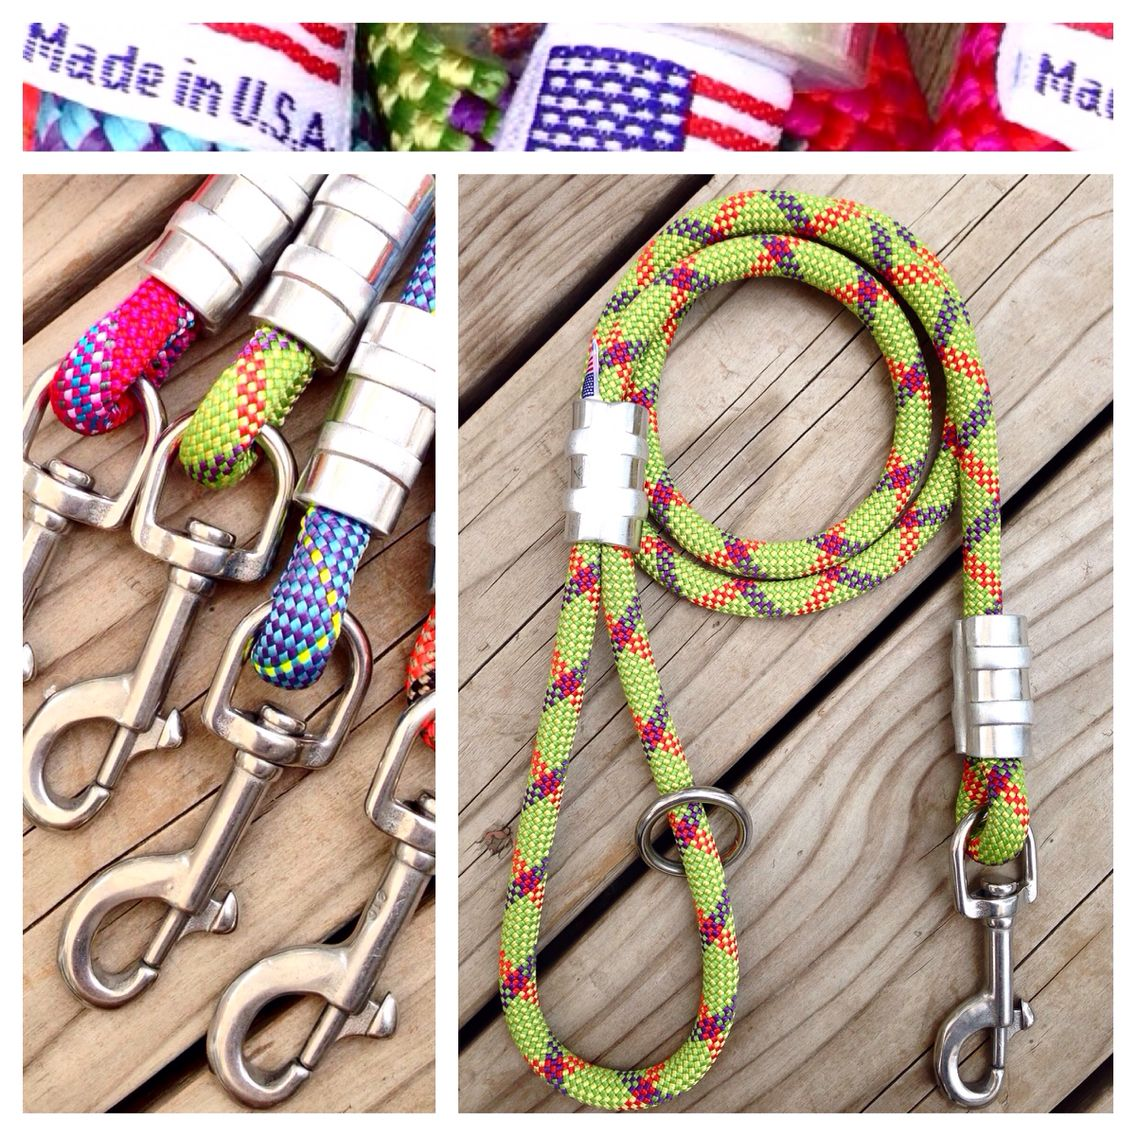 Rugged And Built To Last Our Climbing Rope Dog Leashes Are Among